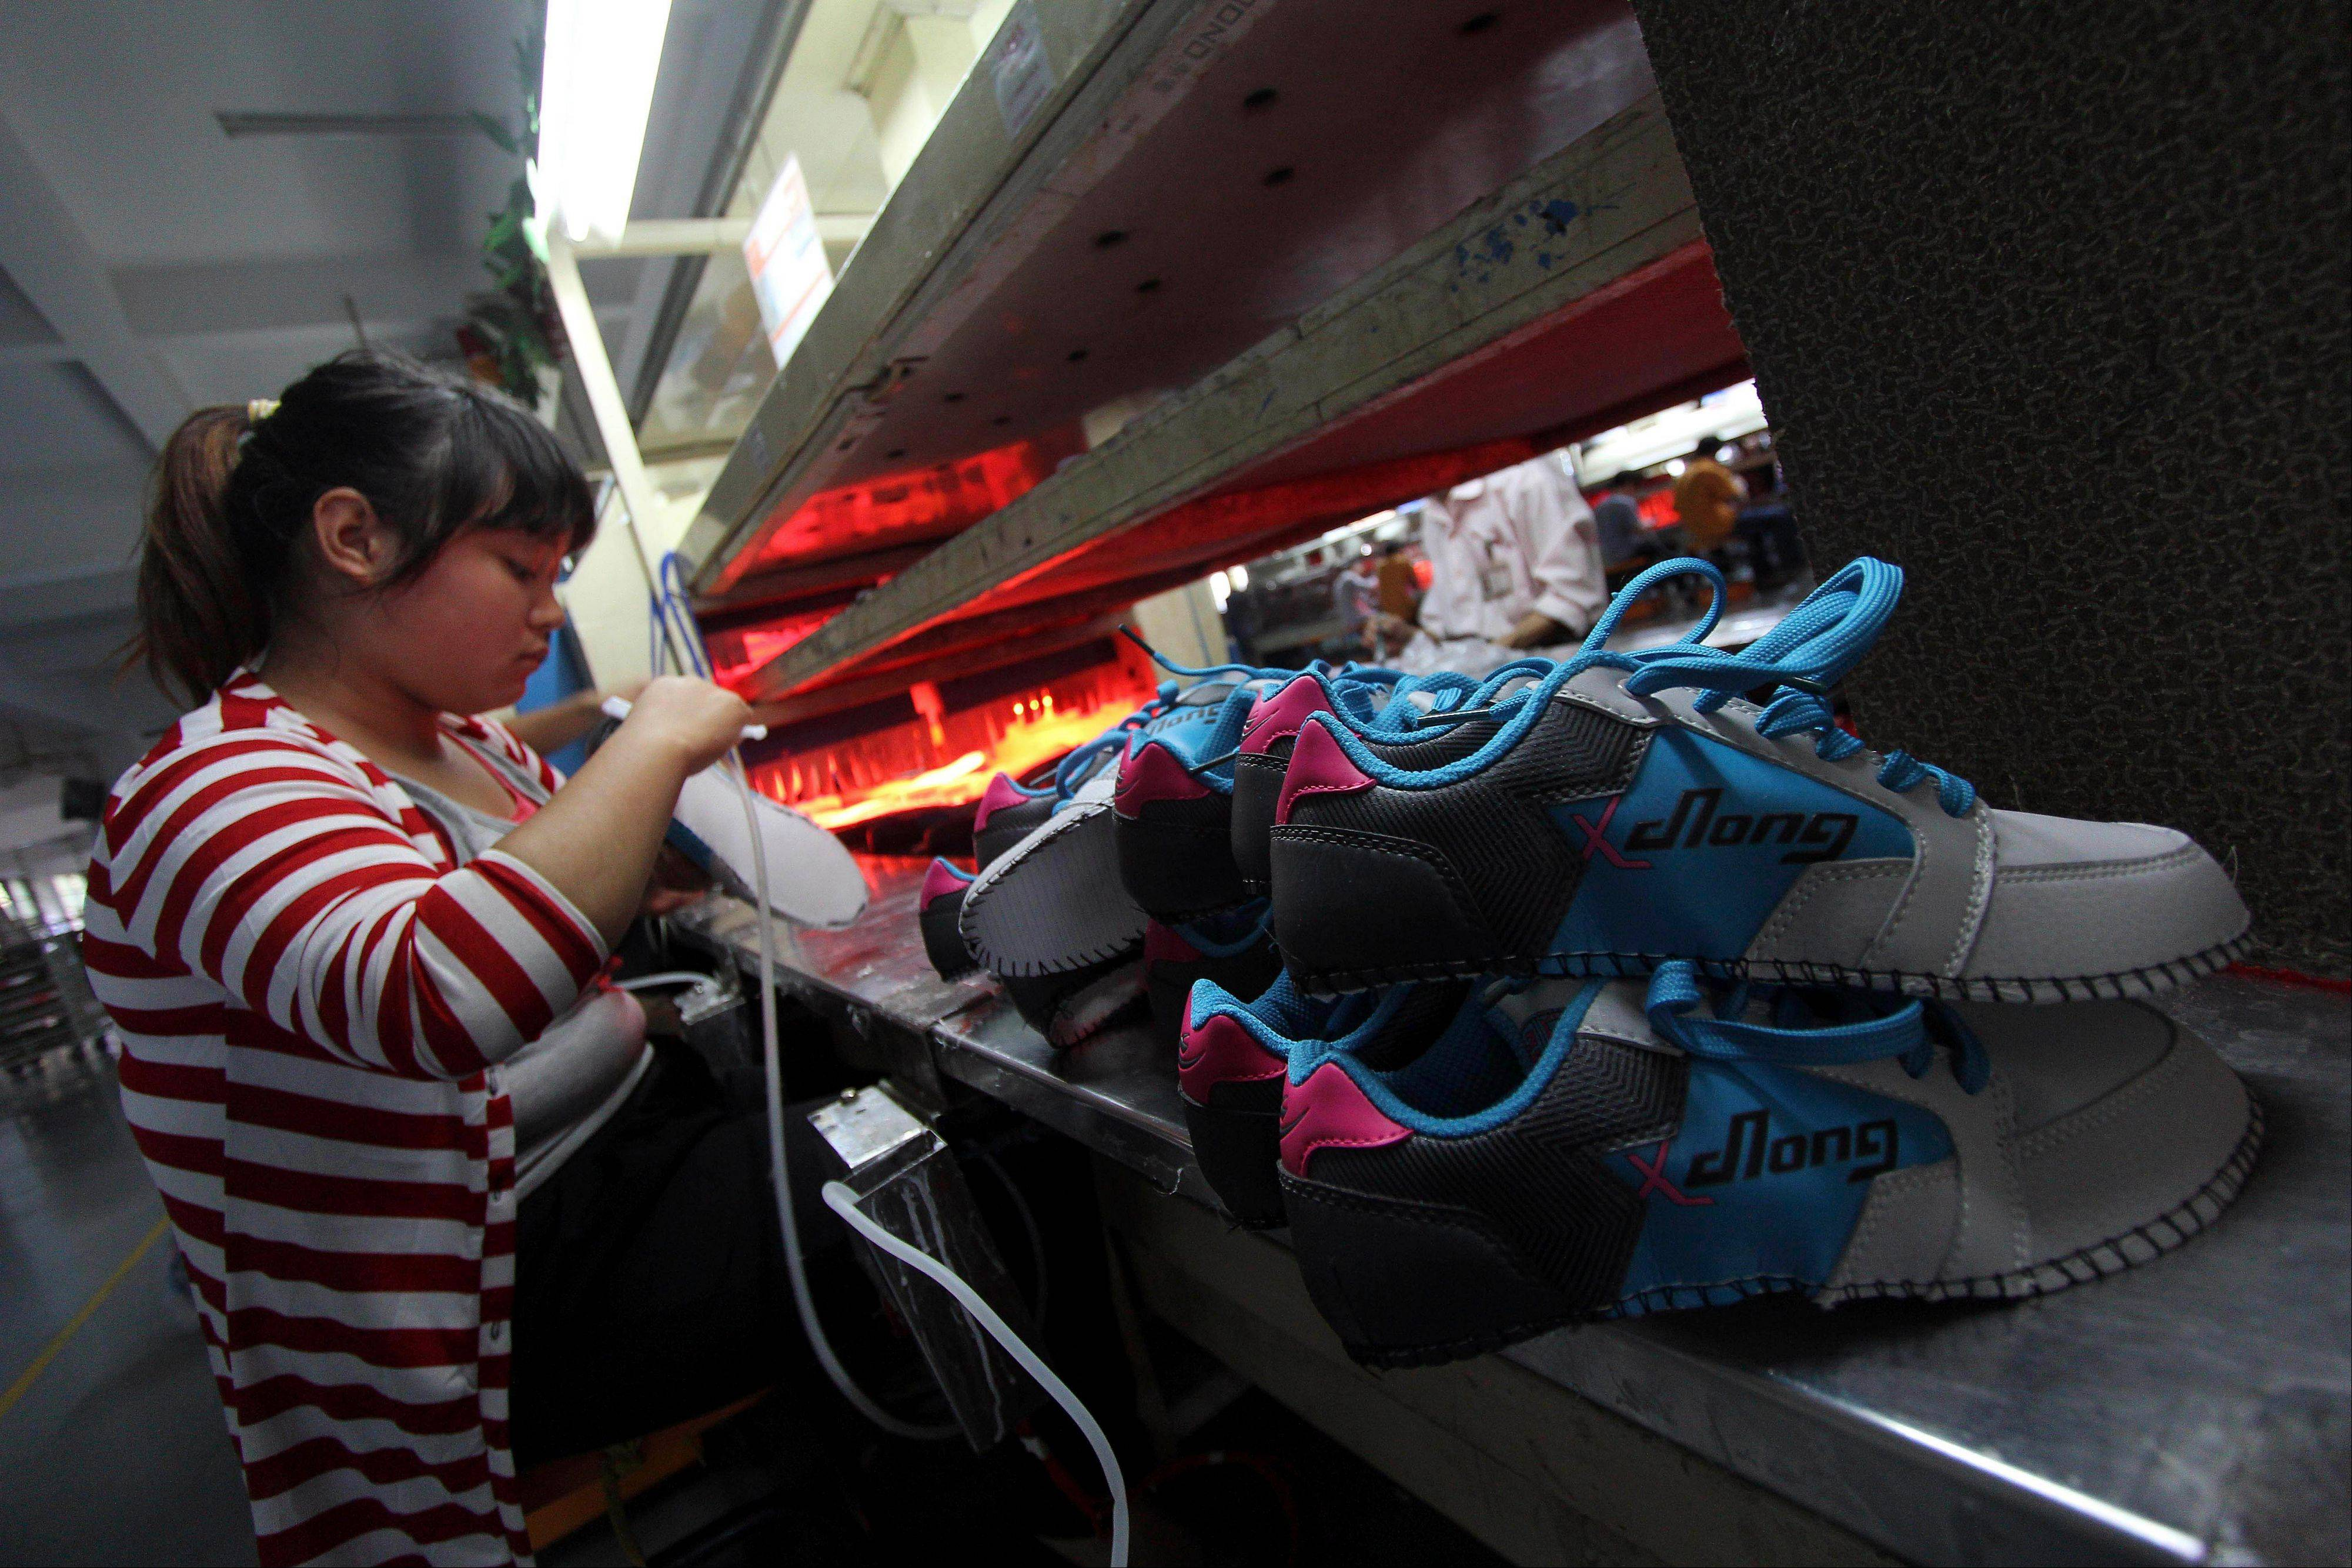 China's auto sales, consumer spending and factory output improved in October in a new sign of economic recovery as the Communist Party prepared to install a new generation of leaders. Growth in factory output accelerated to 9.6 percent over a year earlier from the previous month's 9.2 percent, the government reported Friday.